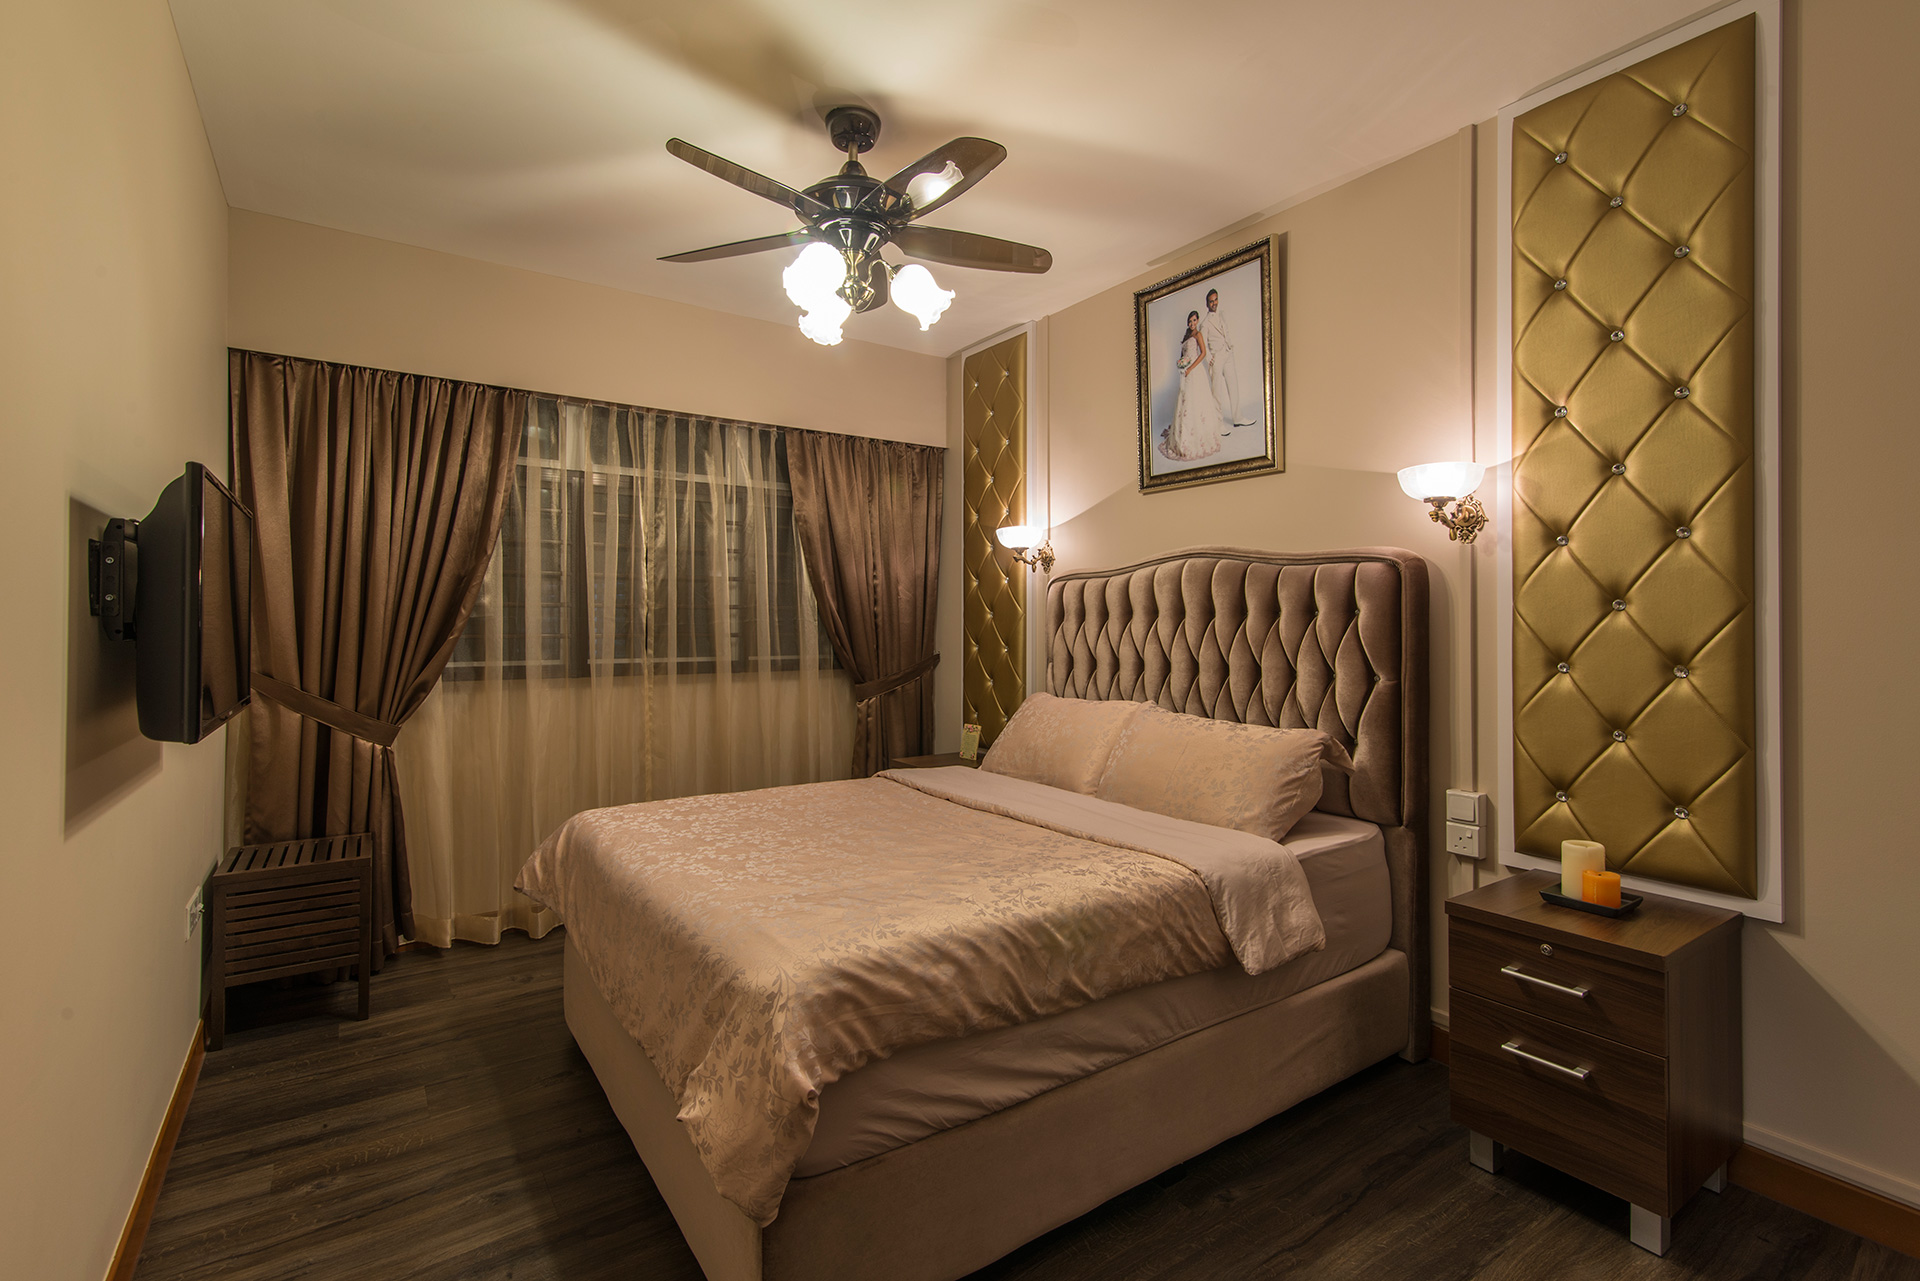 Country, Rustic Design - Bedroom - HDB 5 Room - Design by Ideal Design Interior Pte Ltd